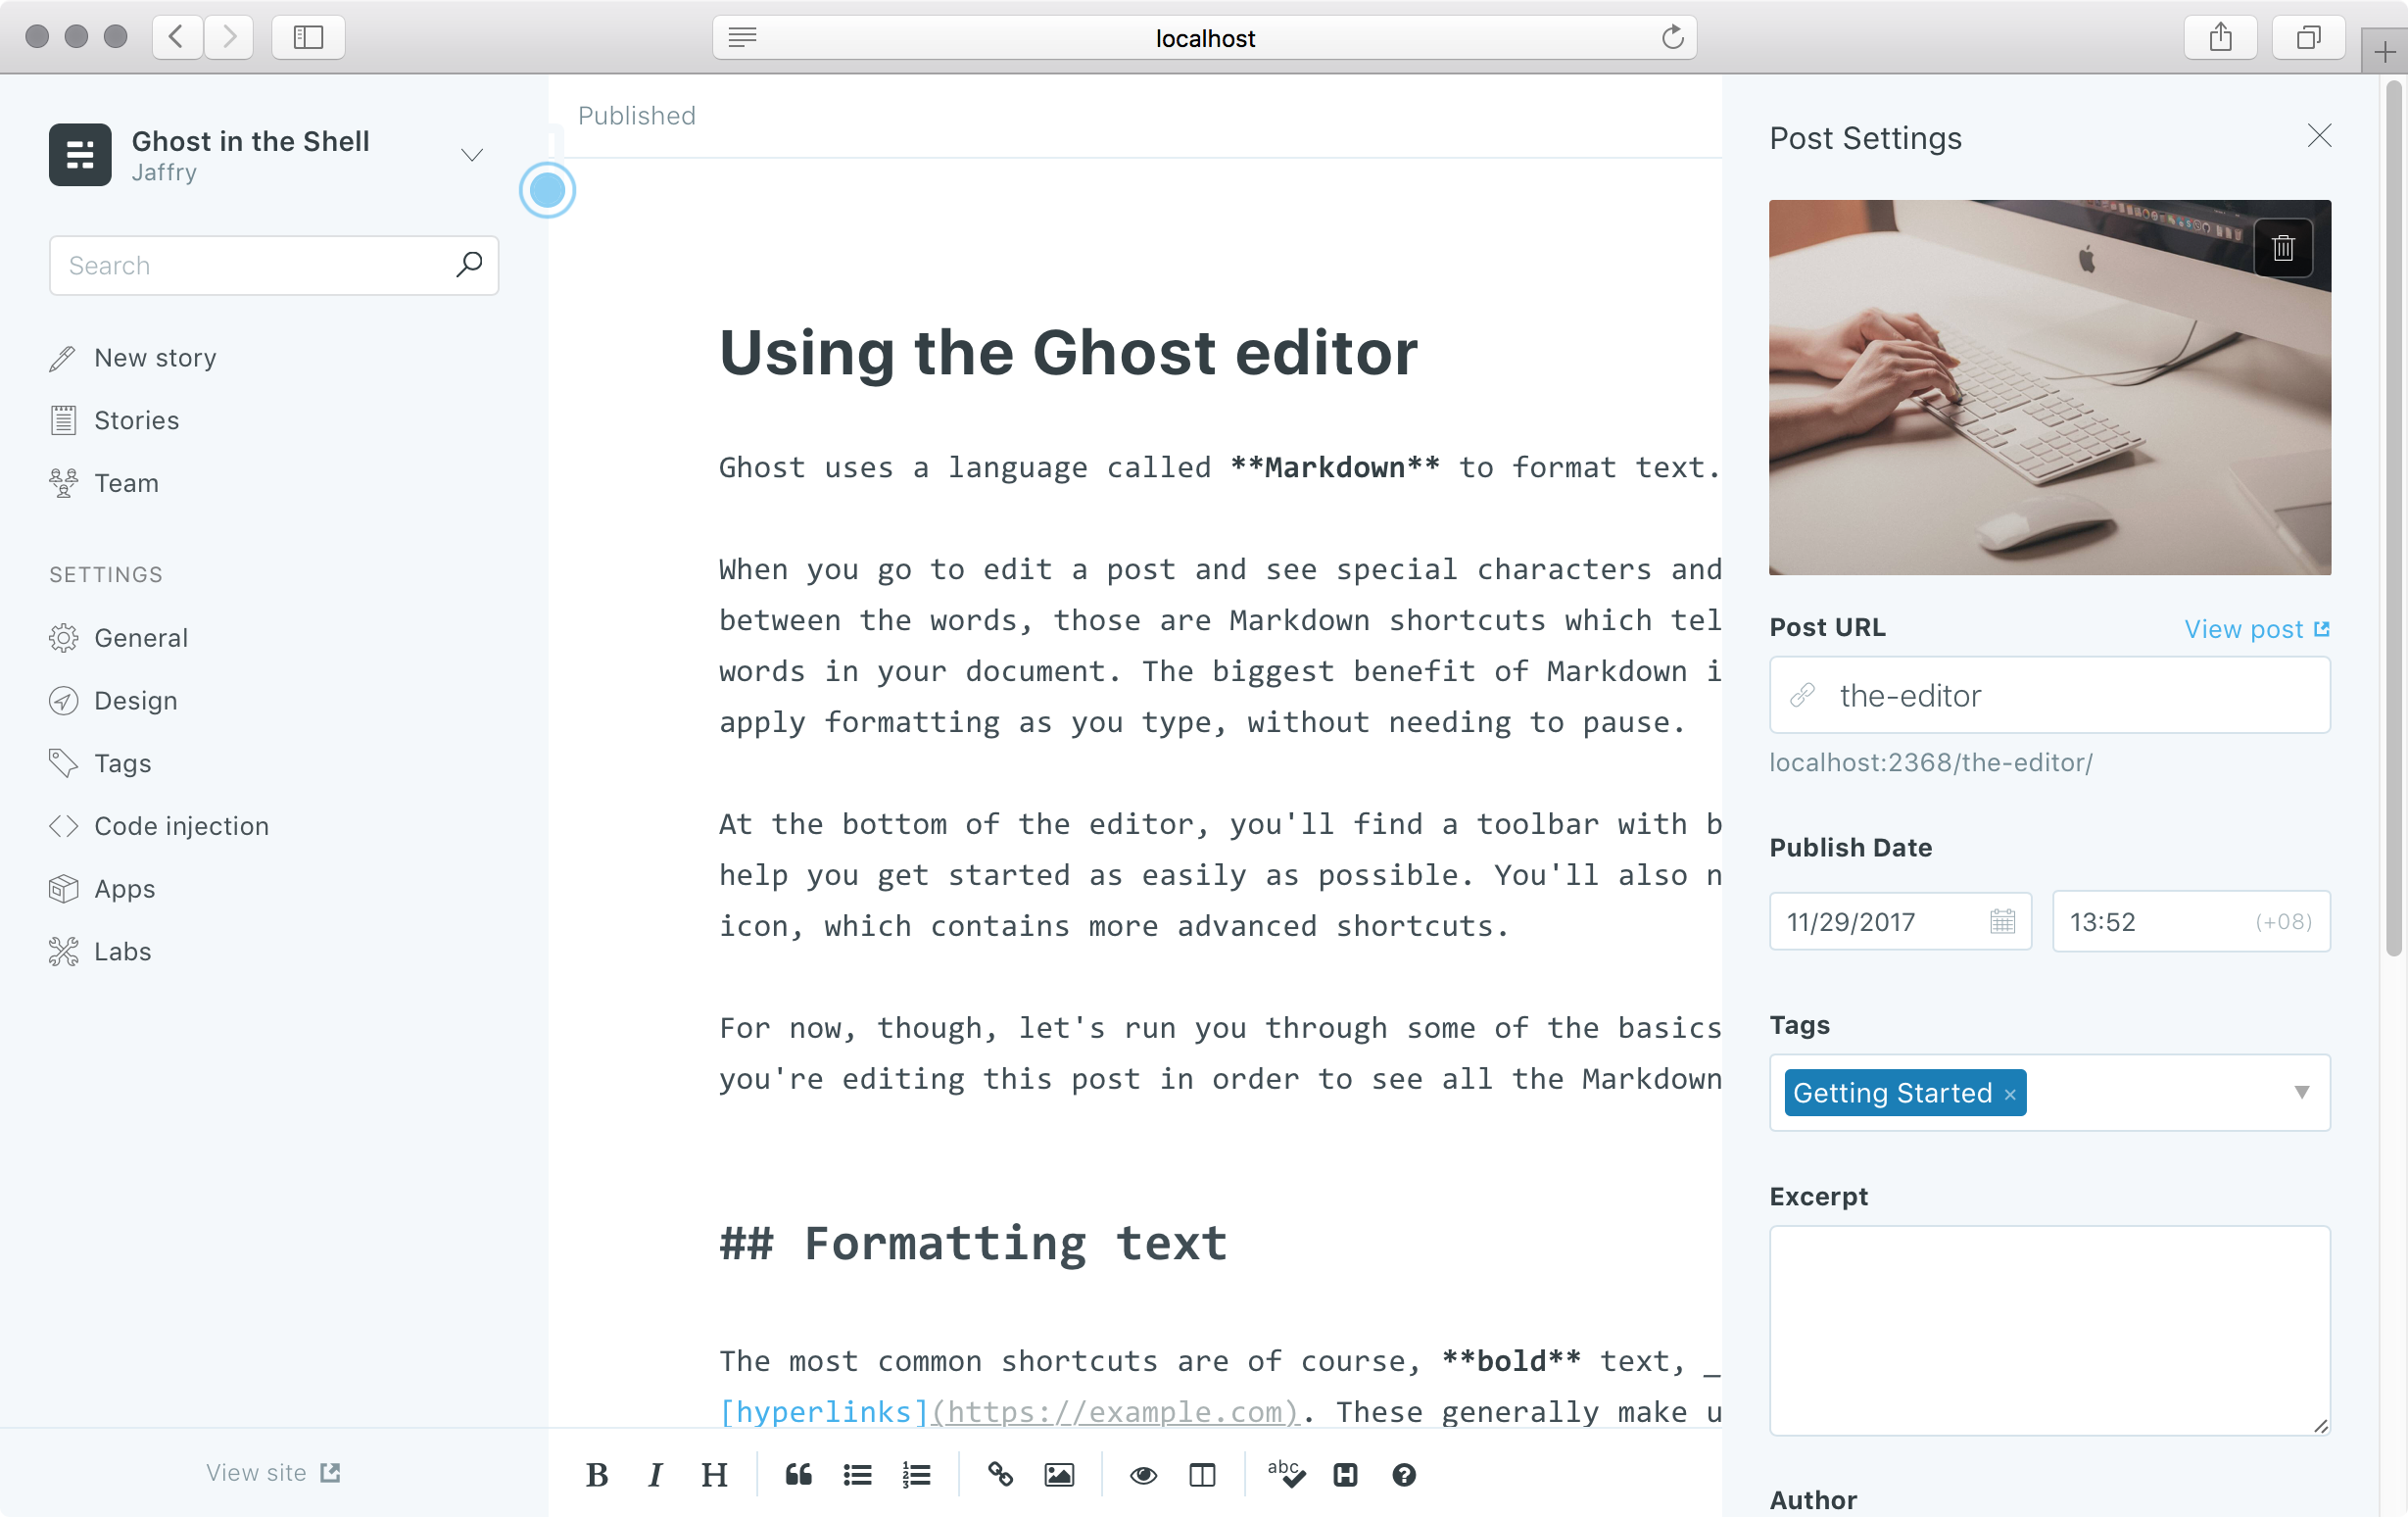 A snapshot of the ghost editor interface